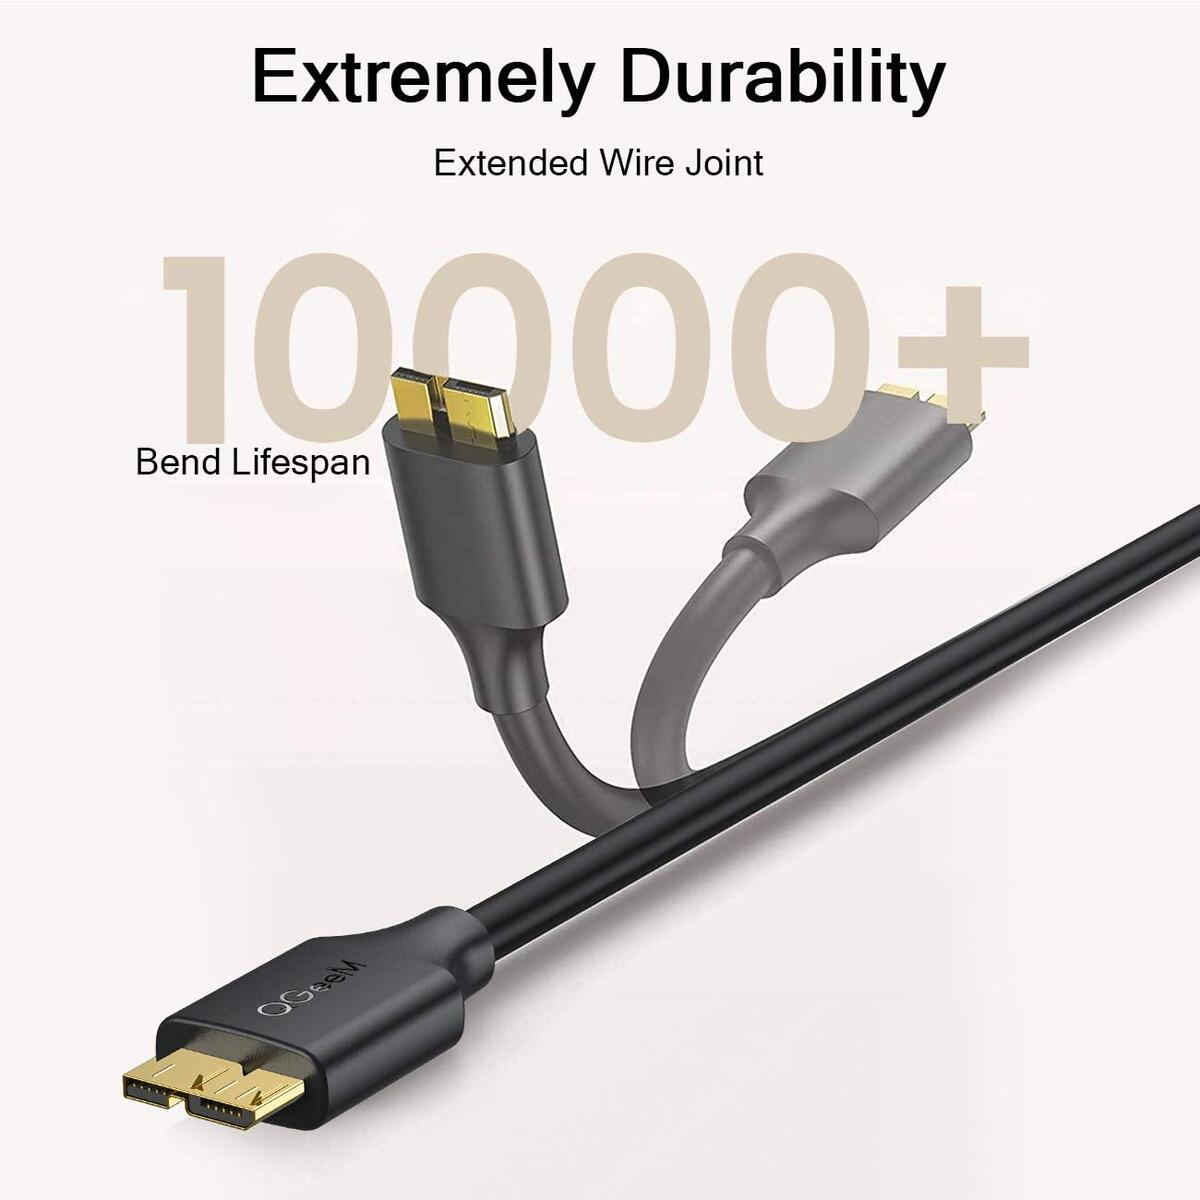 Micro USB 3.0 Cable 3FT, USB 3.0 A to Micro B Cable Charger Compatible with Samsung Galaxy S5, Note 3, Note Pro 12.2, WD Western Digital My Passport and Elements Hard Drives, 3.0 USB Cable